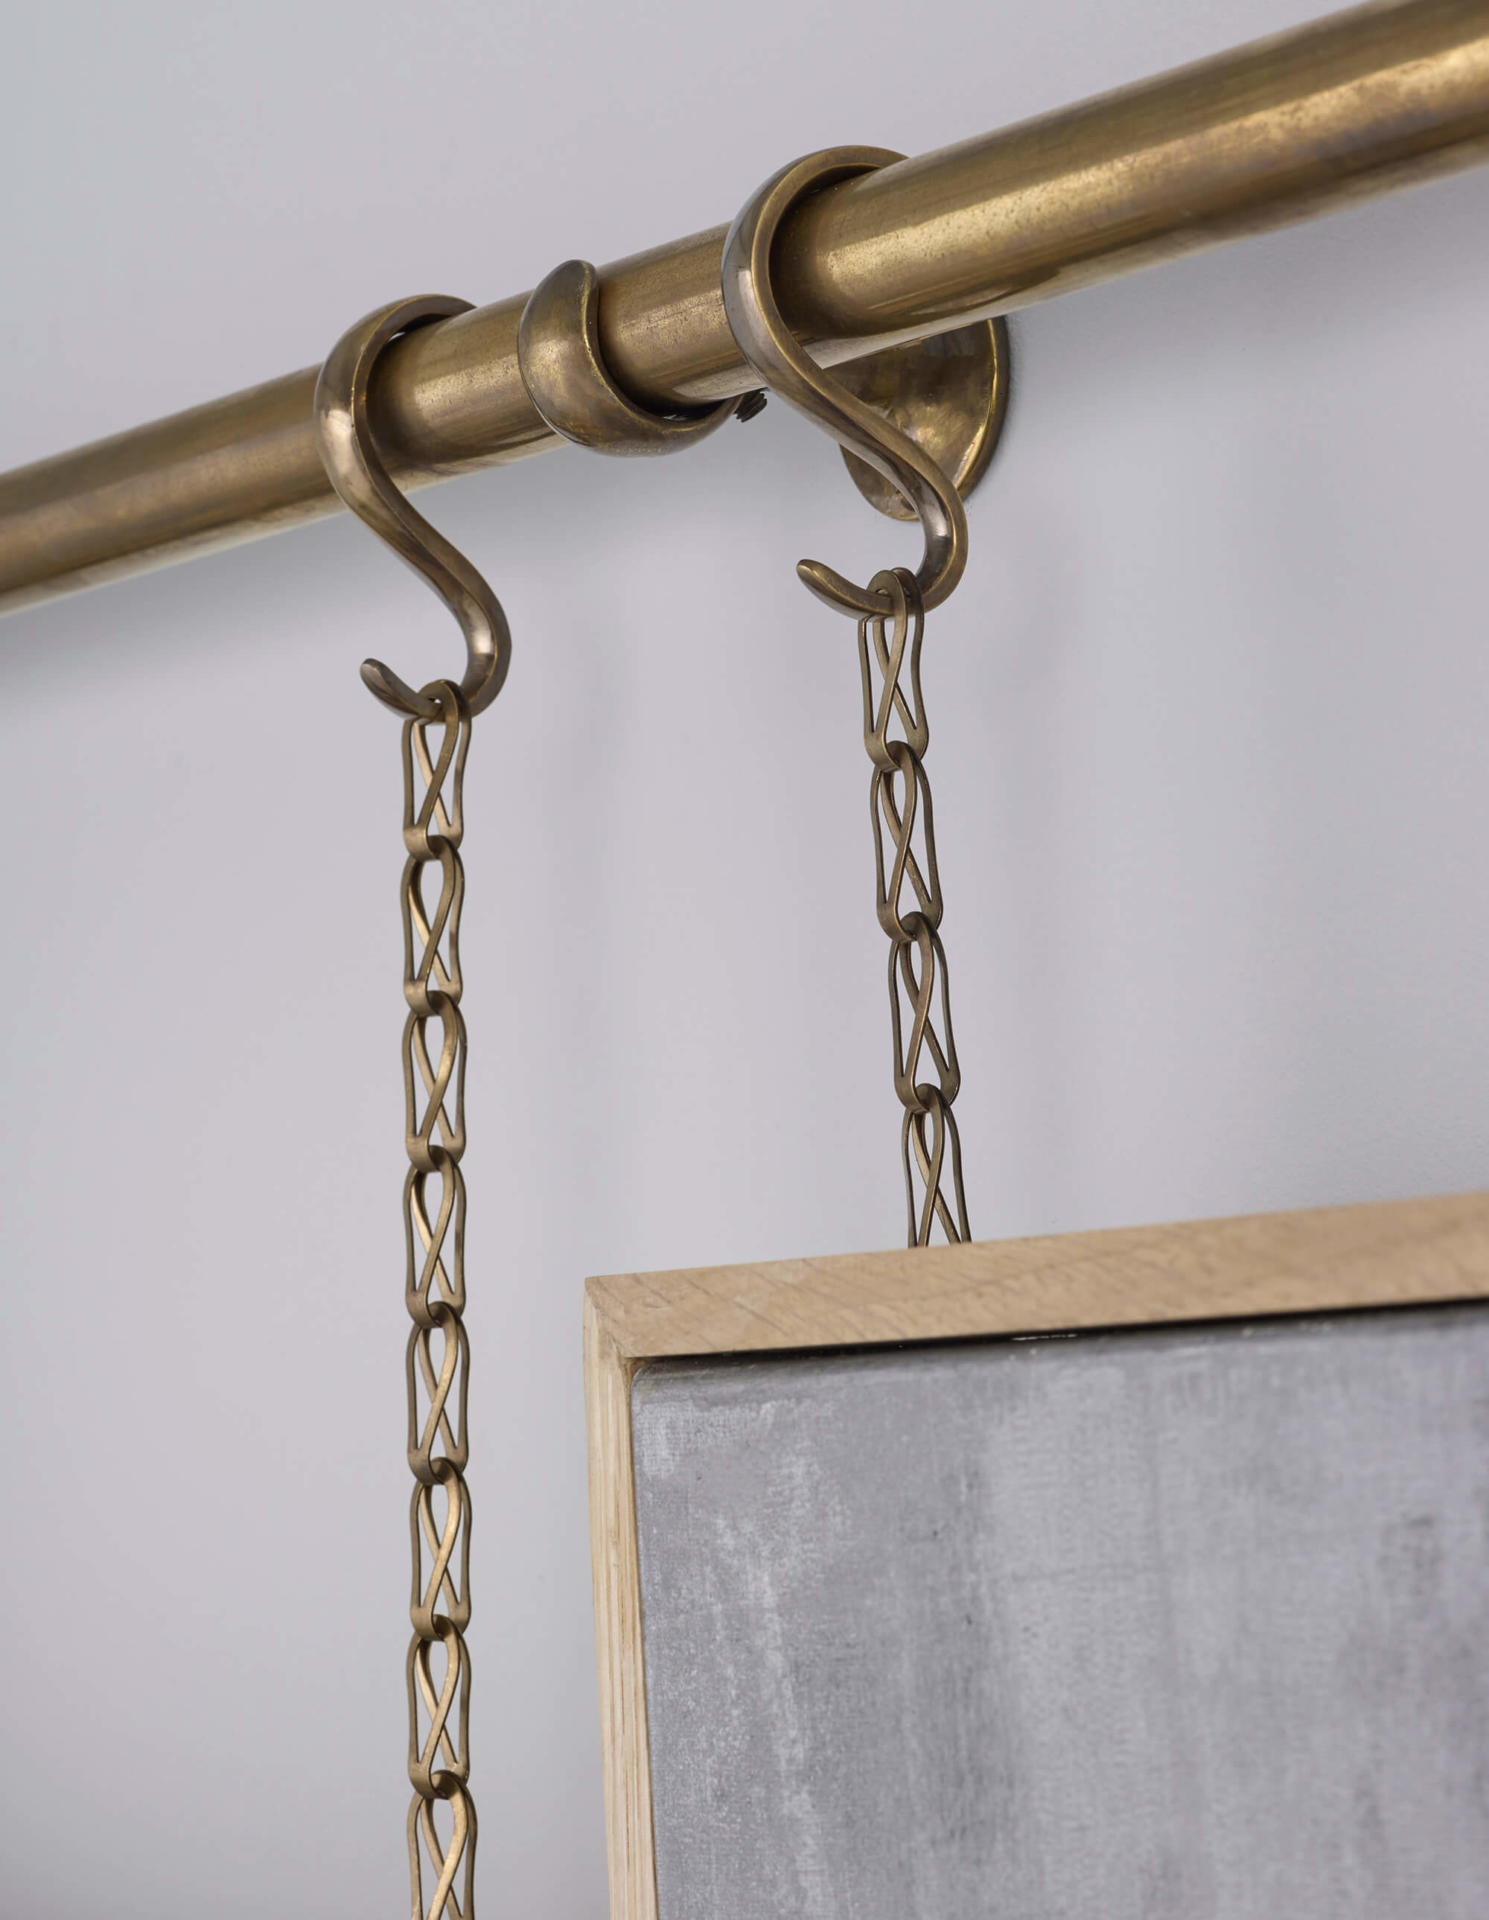 brass picture chain and rail made to order by Collier Webb